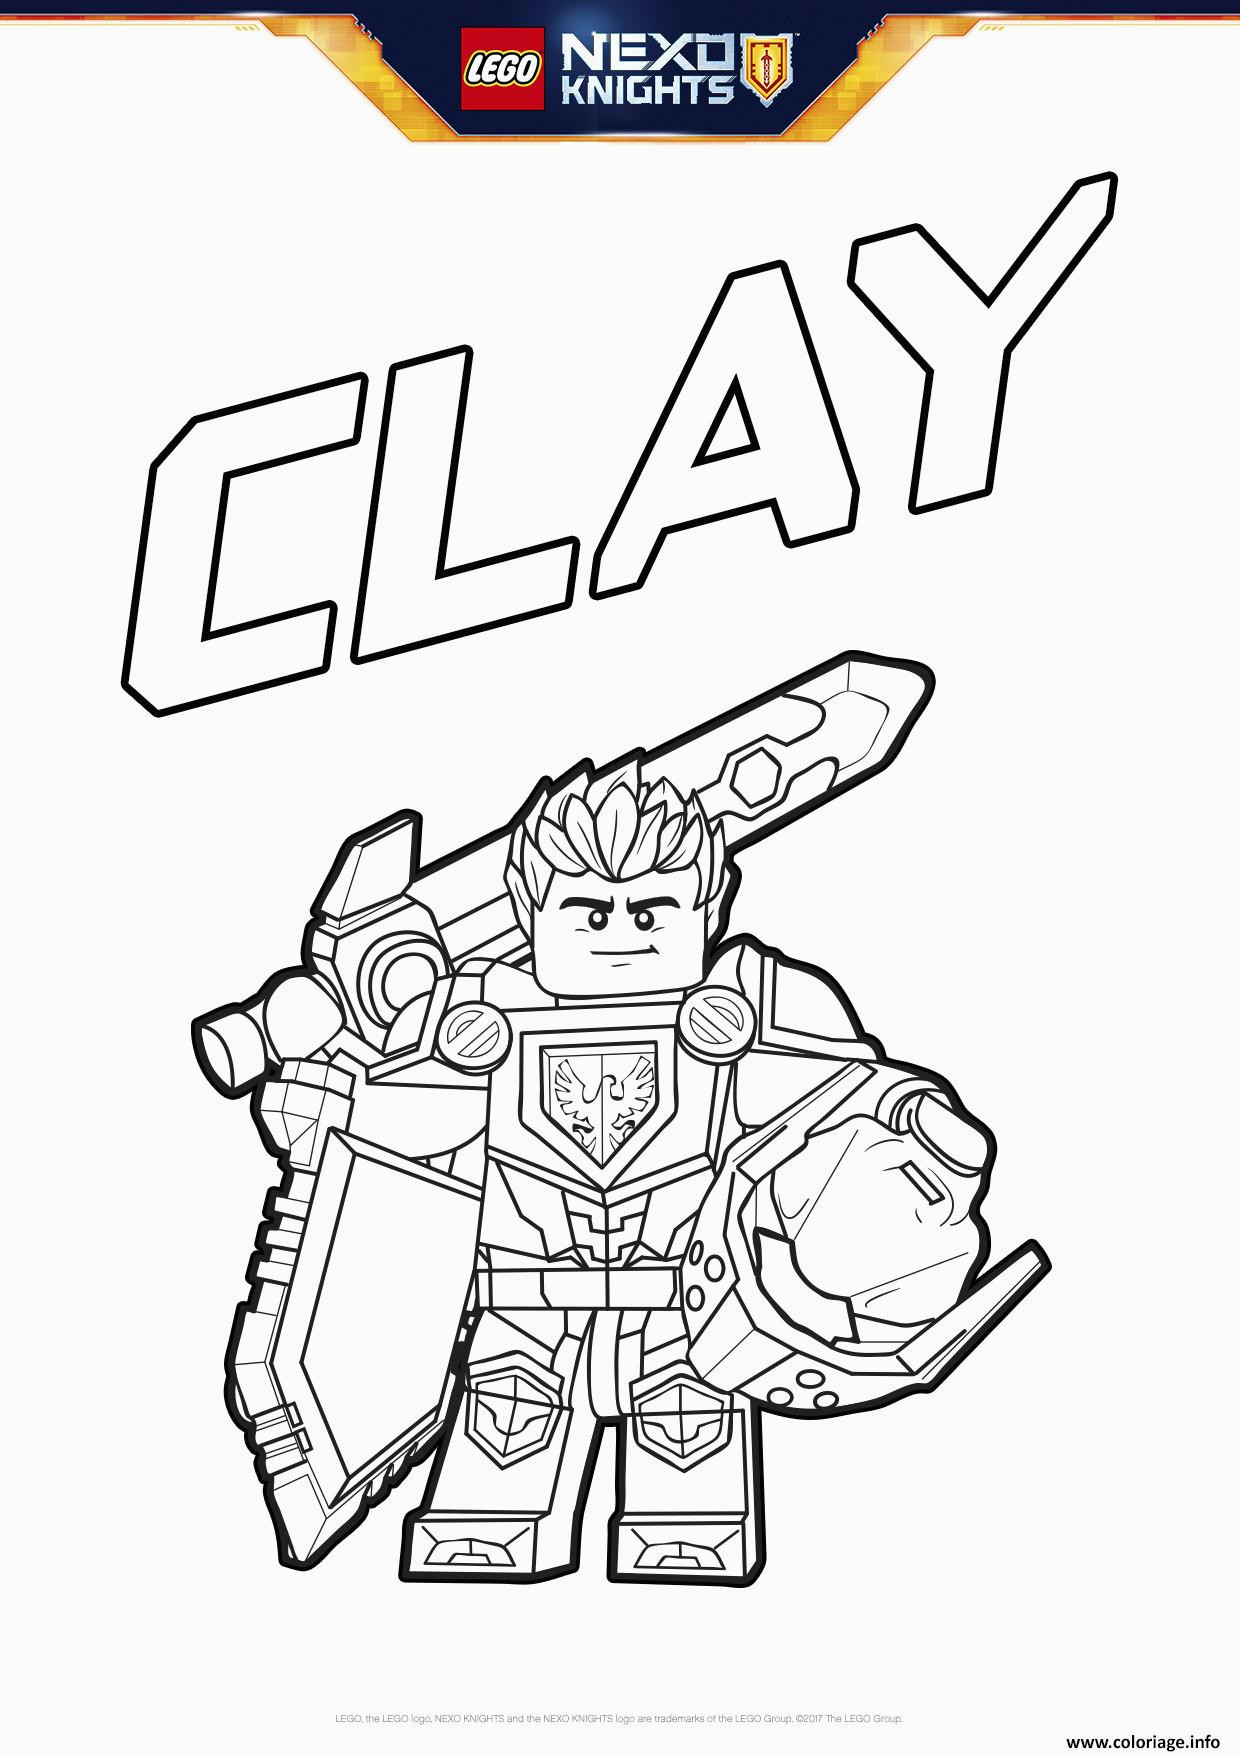 Coloriage Lego Nexo Knights Coloriage Lego Nexo Knights Bouclier Clay Jecolorie